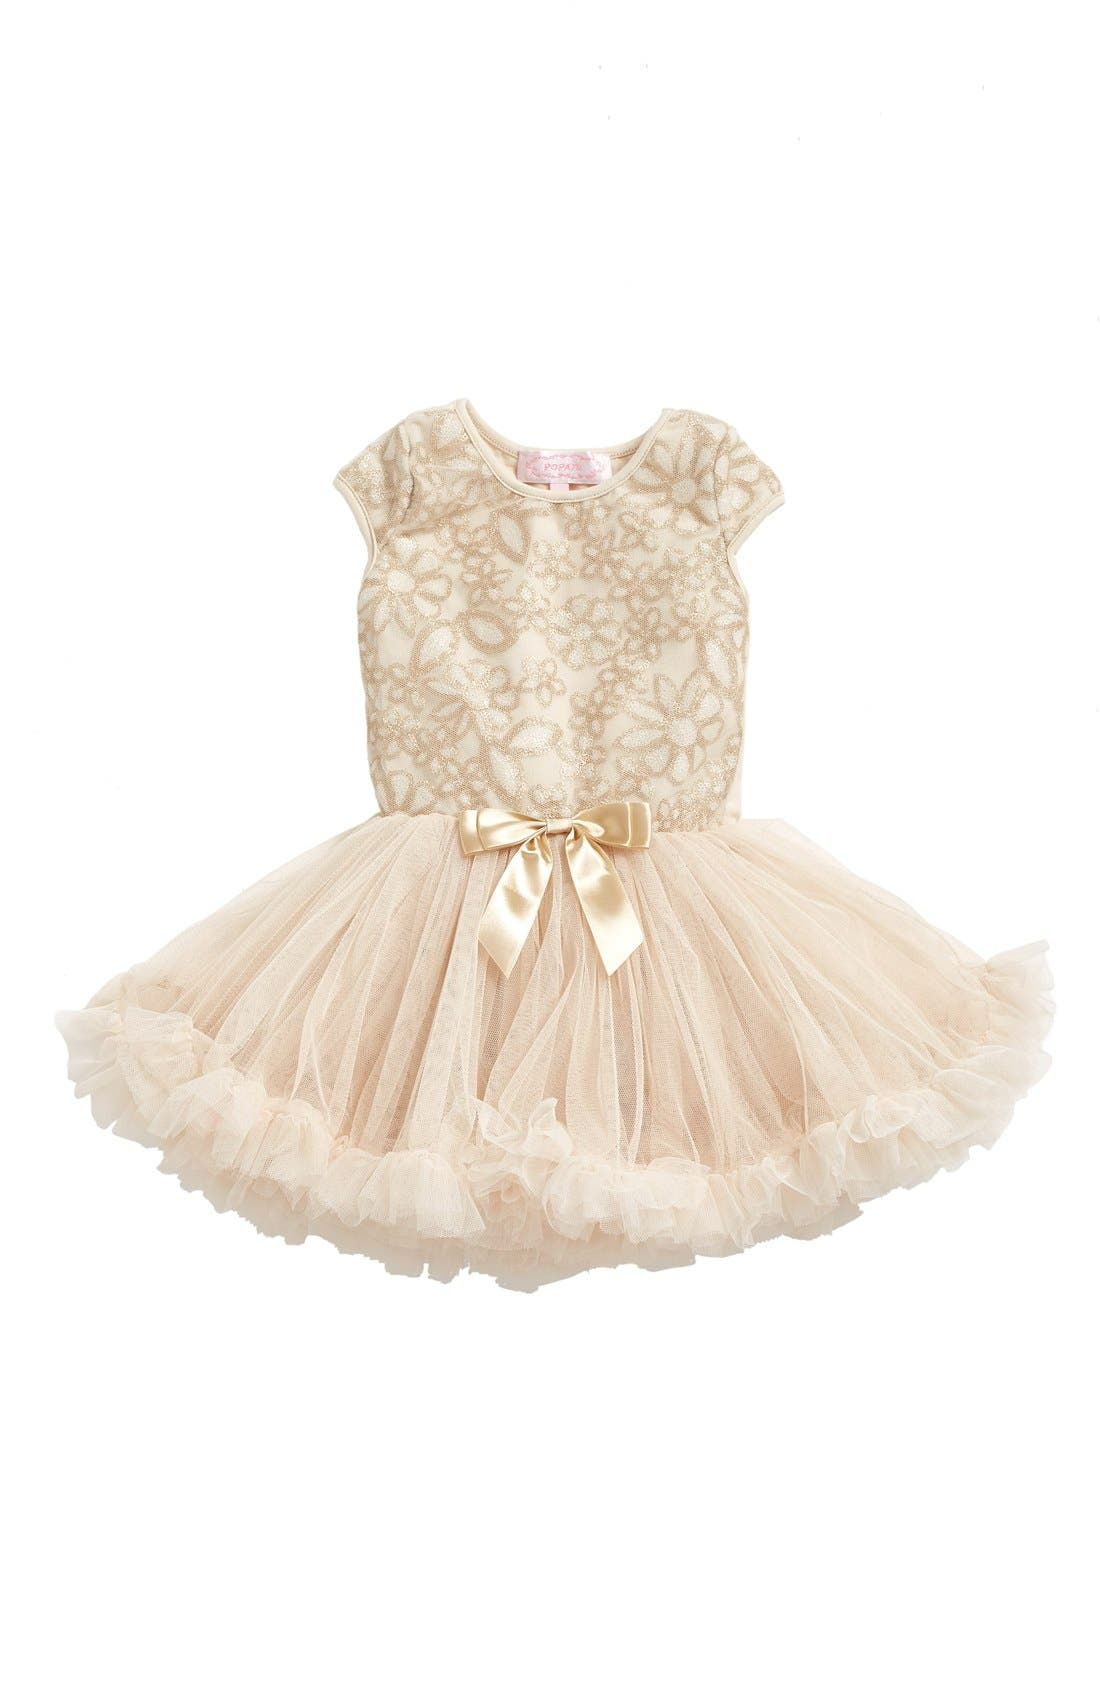 Lace Pettidress,                         Main,                         color, Ivory